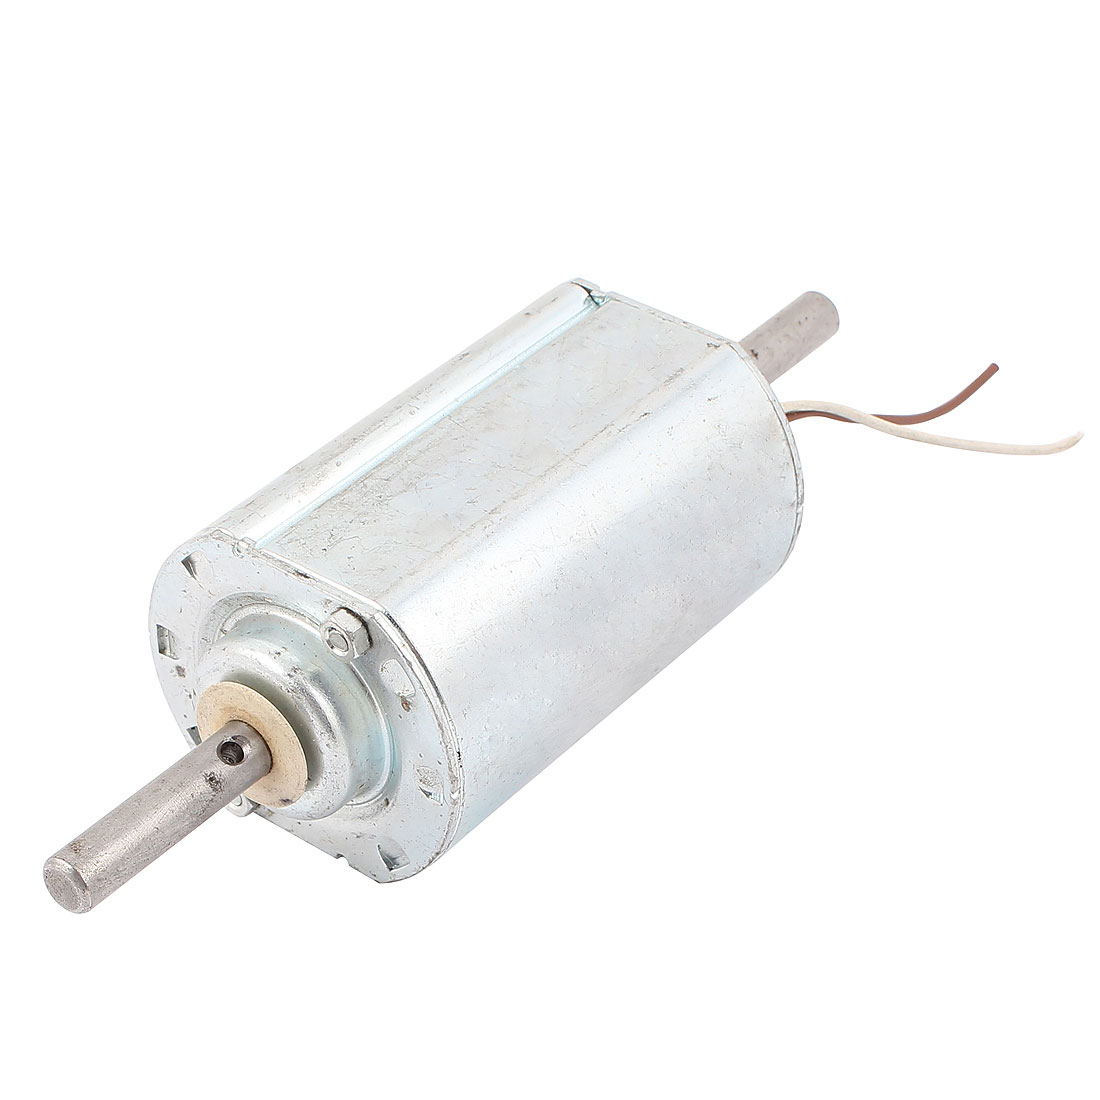 9-24V 15000RPM High Speed D Shaped Double-Shaft Micro DC Brushless Motor for RC Toy